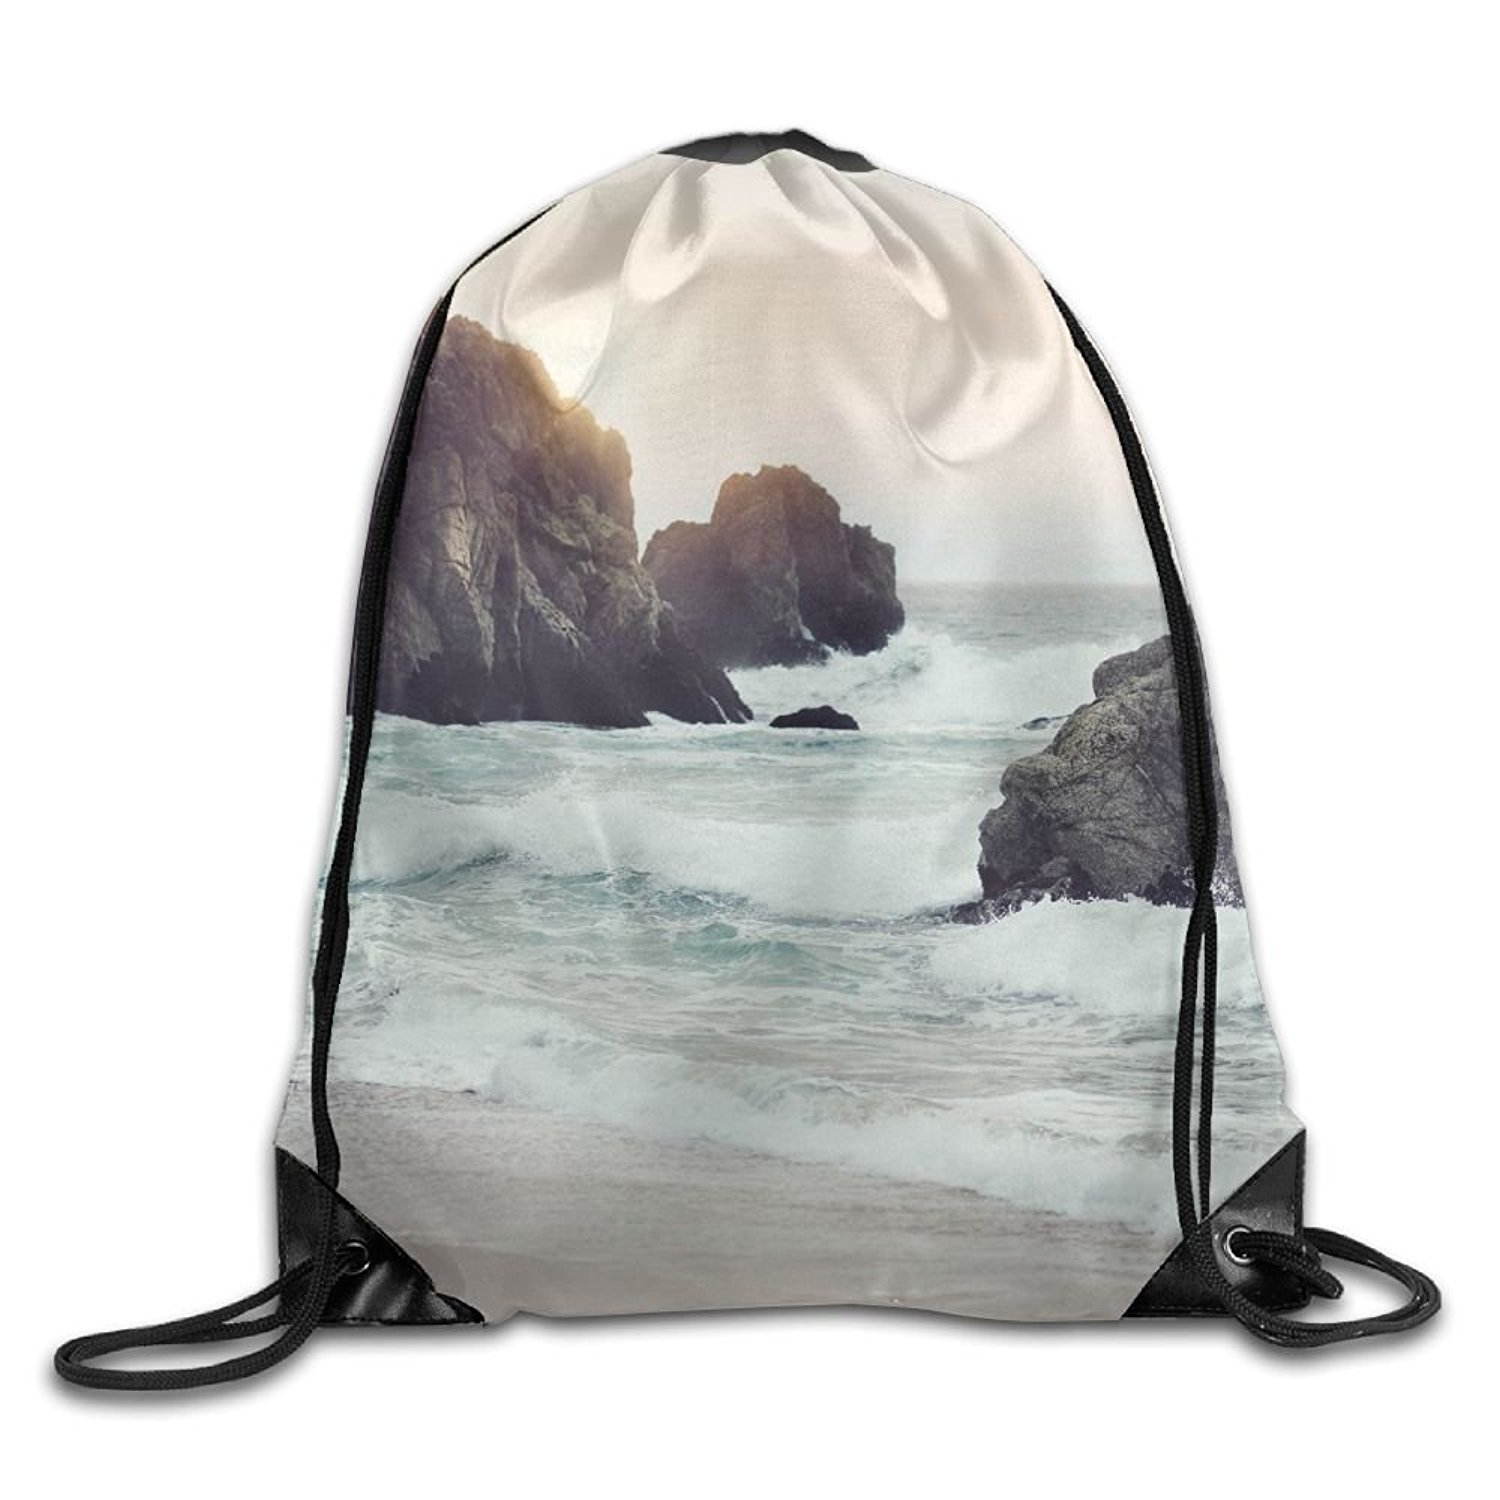 Sea-nature-sunny-beach Personalized Gym Drawstring Bags Travel Backpack Tote School Rucksack